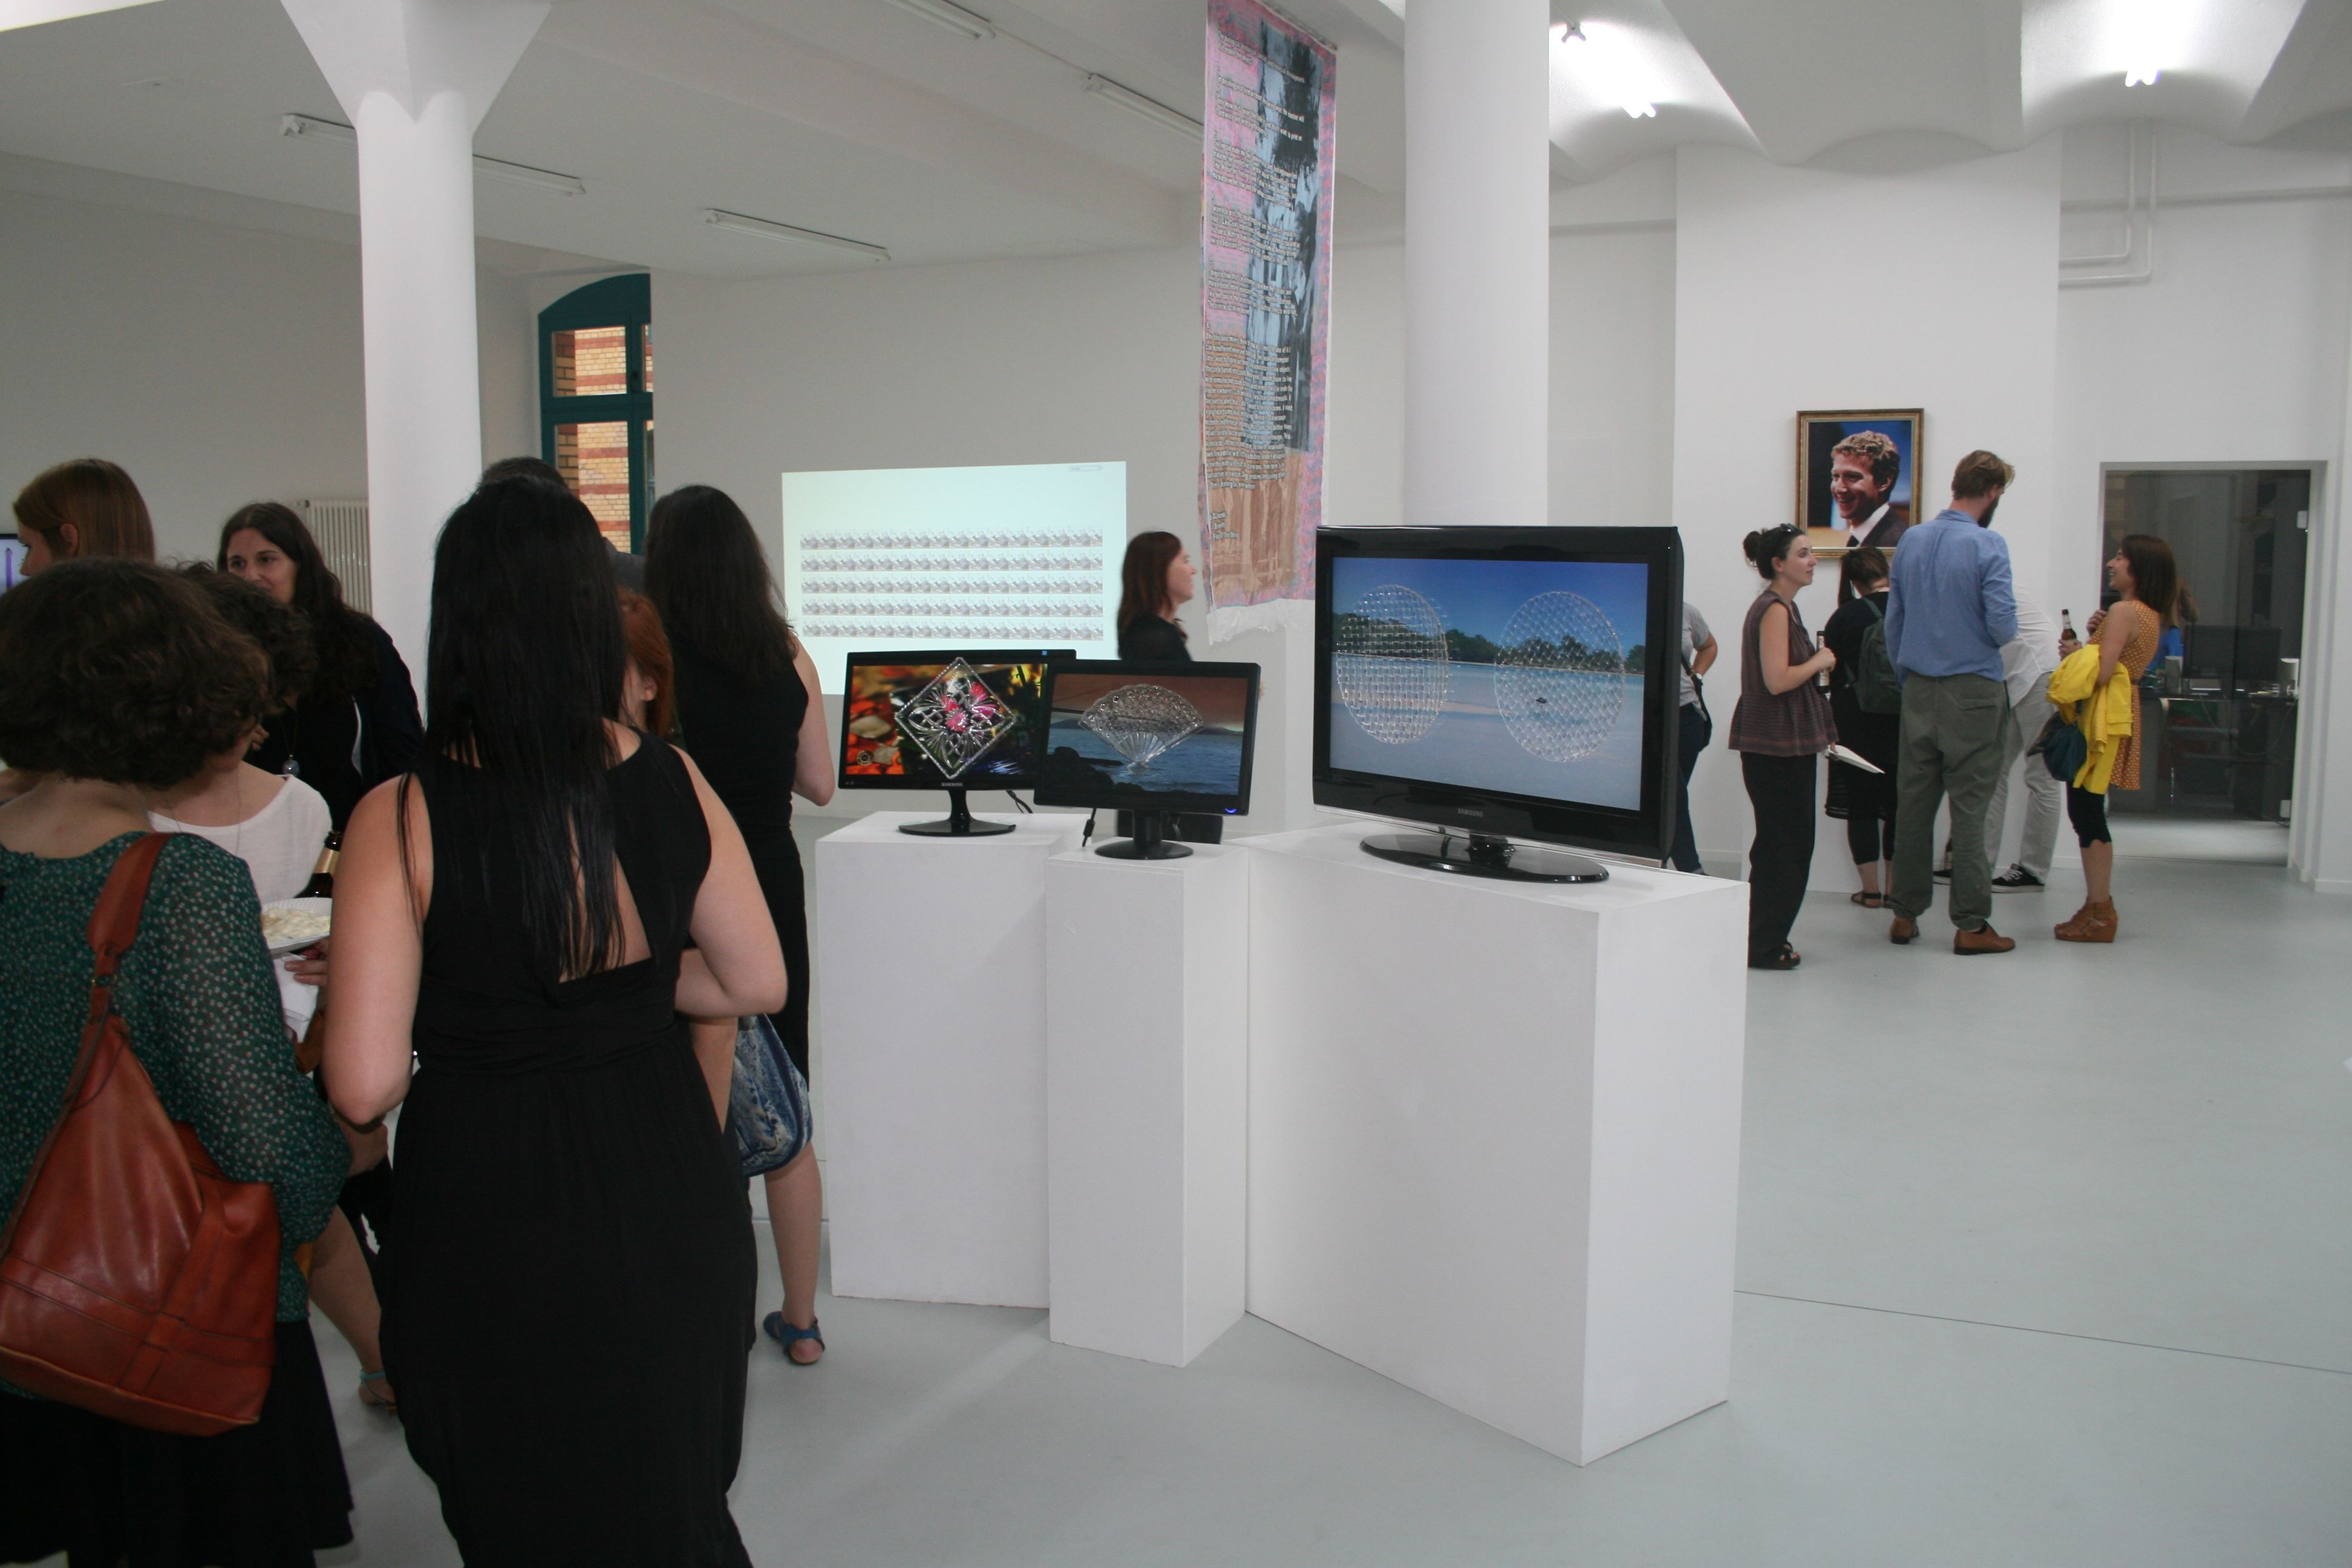 Not By Default, Gruppenausstellung, 2012, Preview